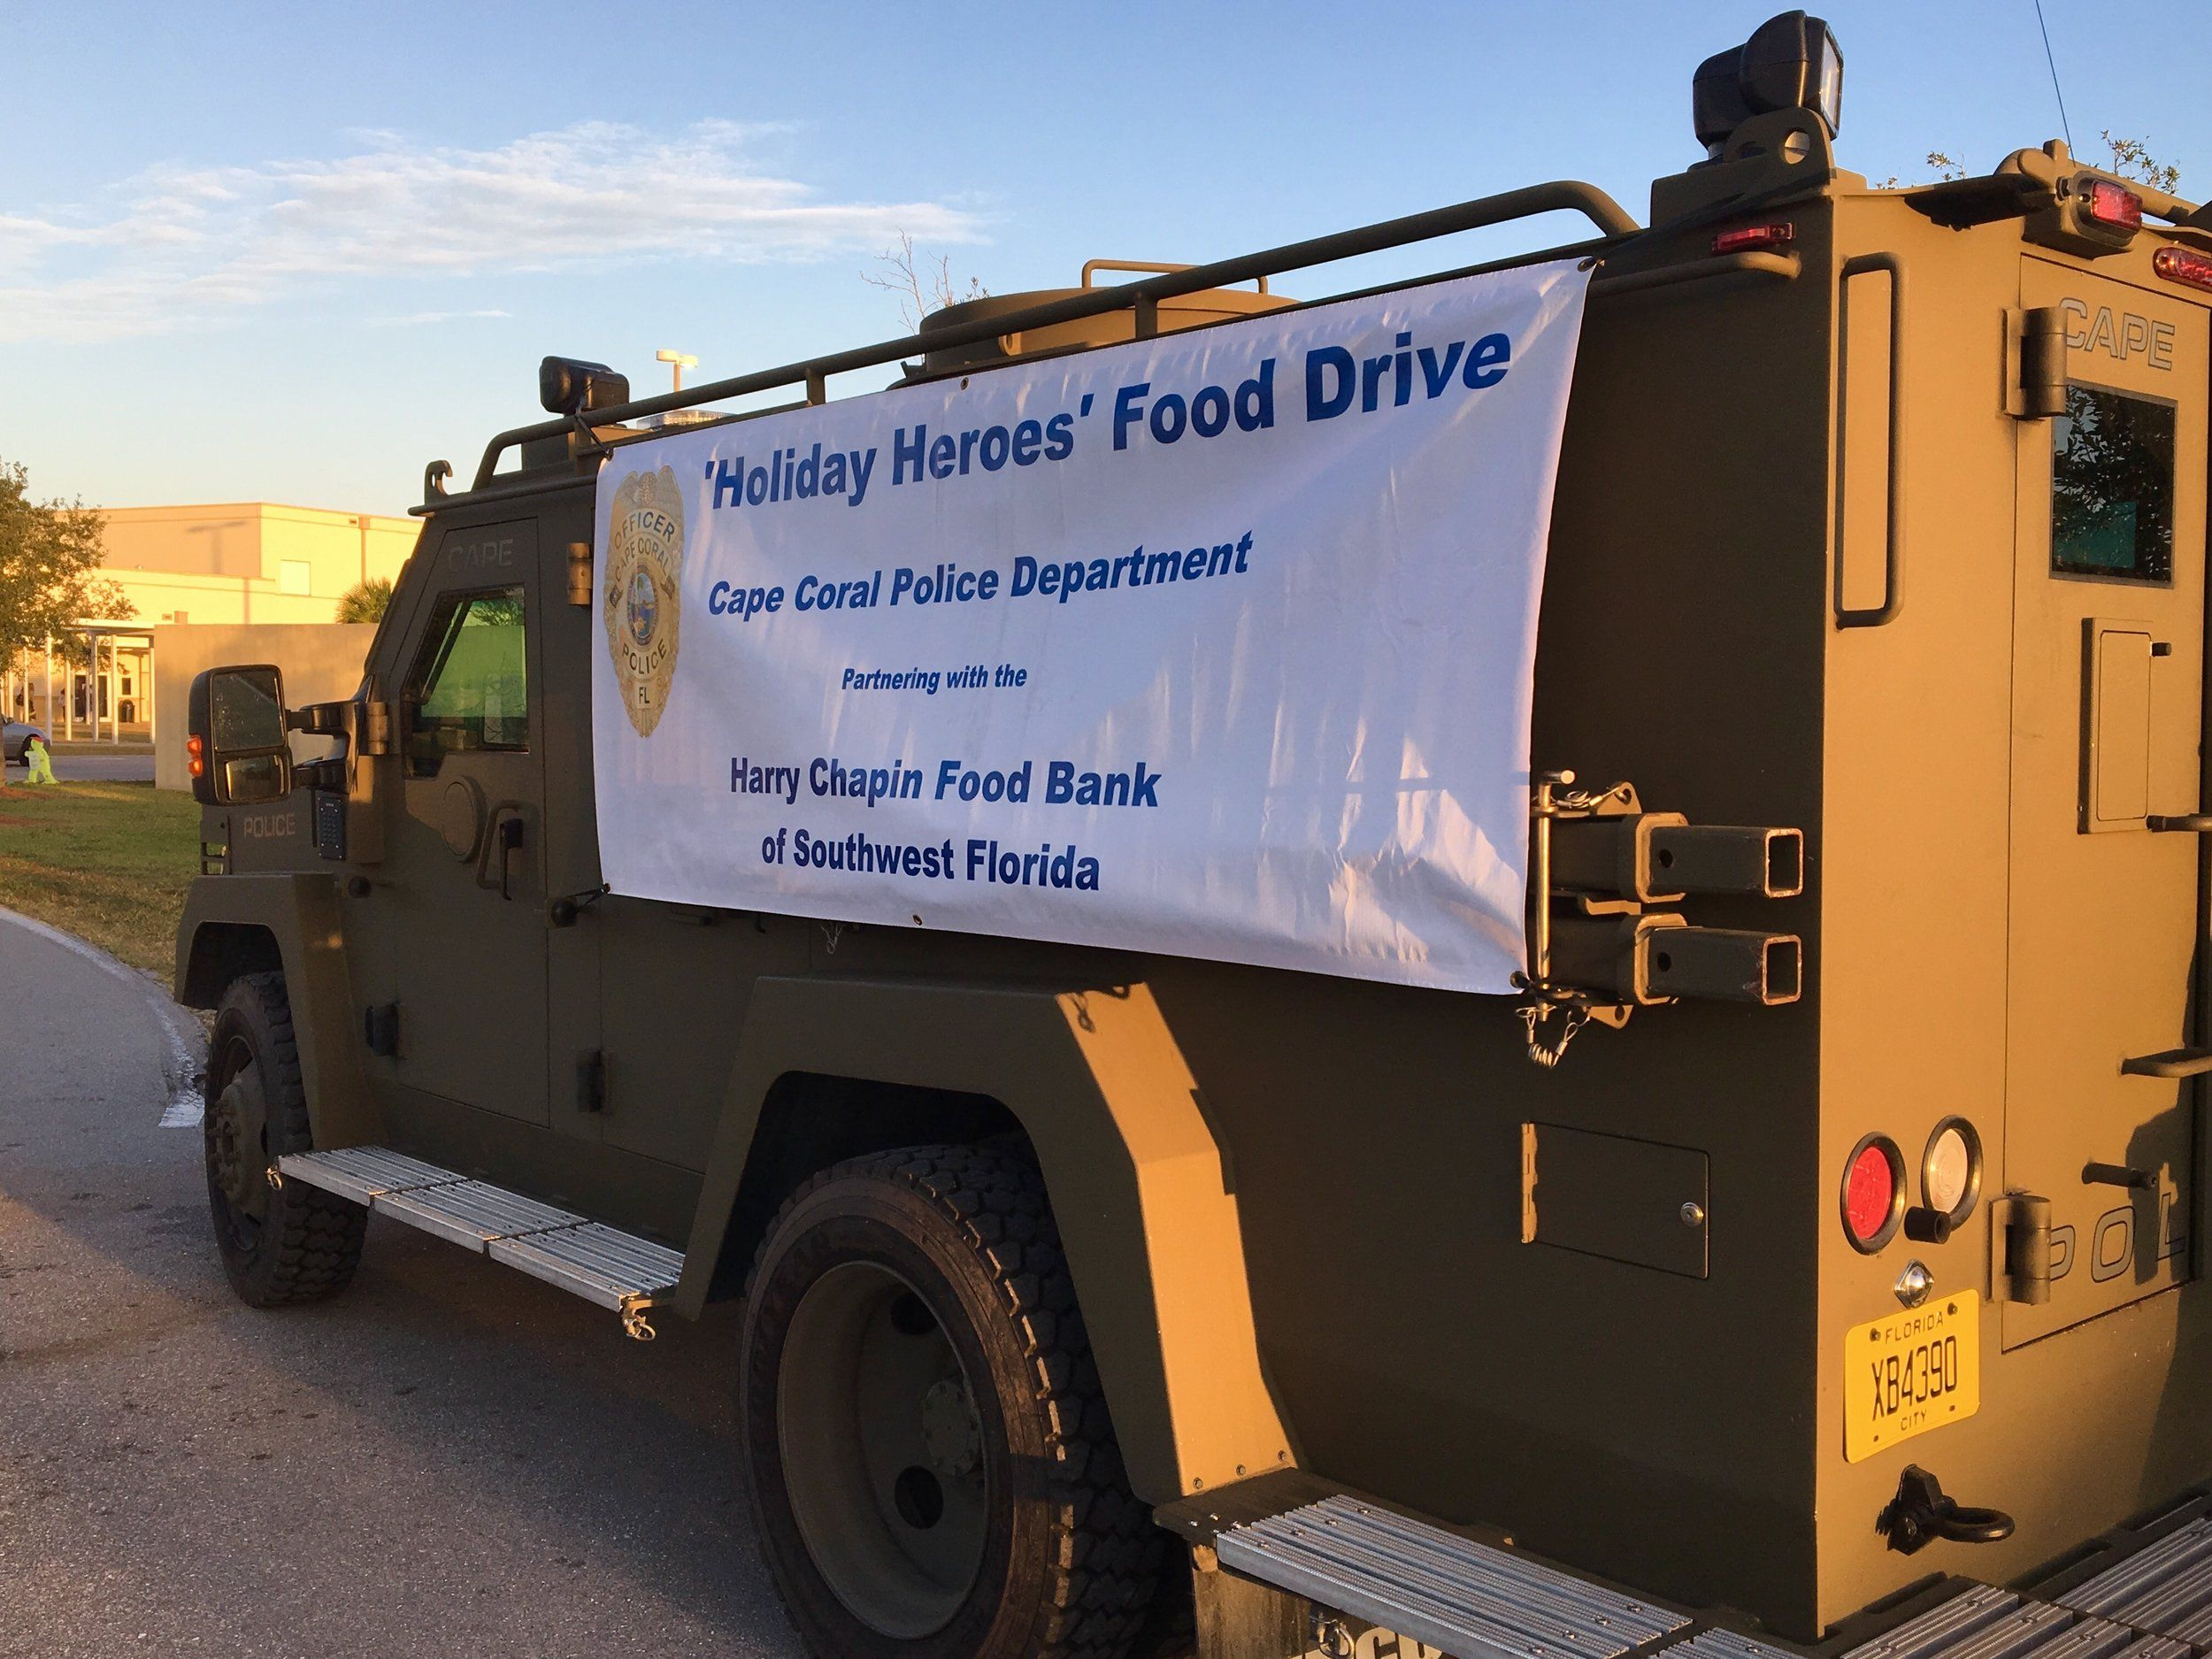 Cape Coral Police Partnering With Walmart For 7th Annual Holiday Heroes Food Drive Cape Coral Police Department Cape Coral Food Drive Police